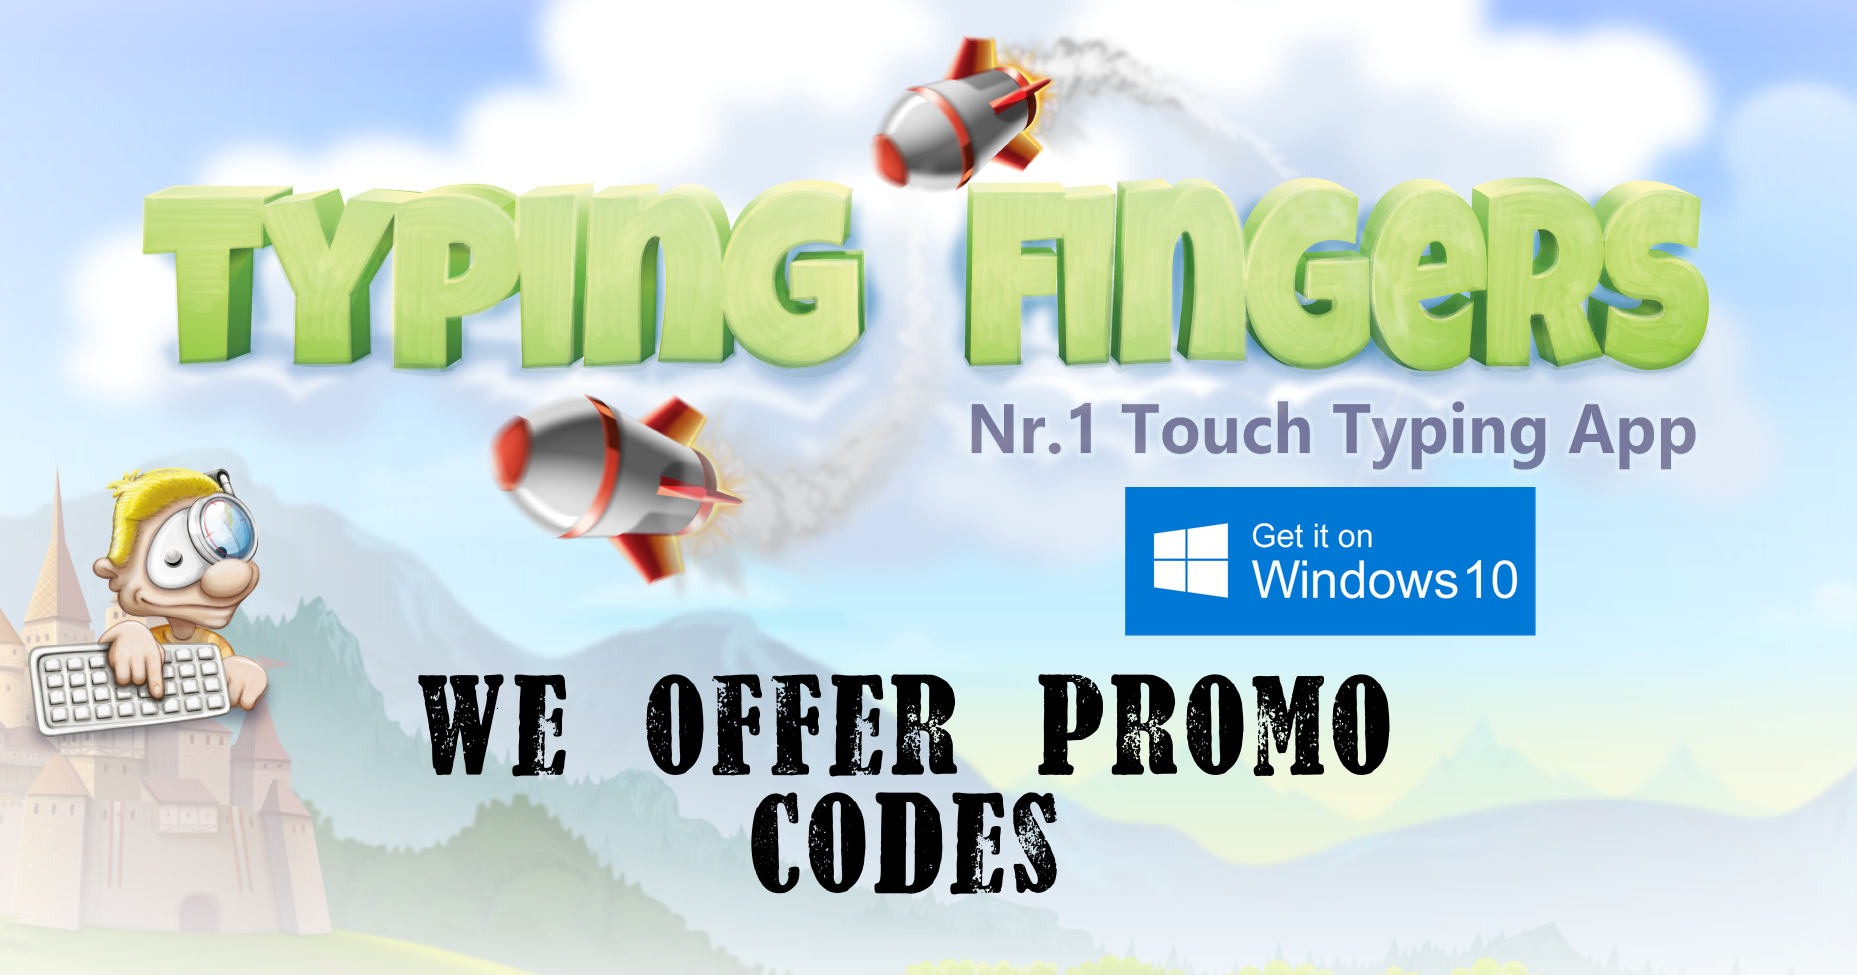 Download 10 Promo codes free on Typing Apps! Hurry! Gear